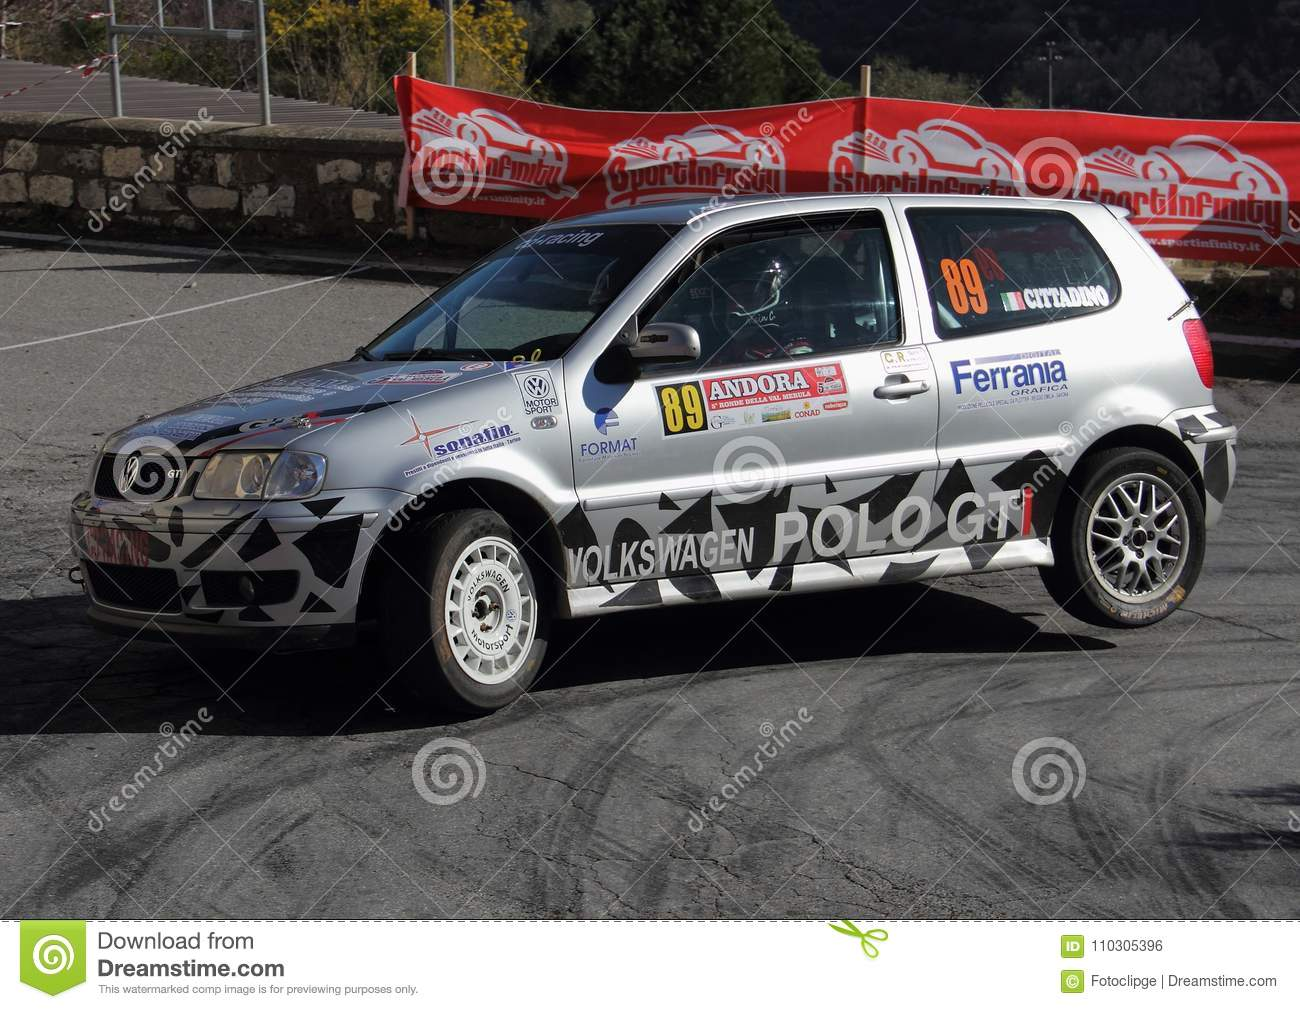 A Vw Polo Gti Race Car Involved In The Race Editorial Photo Image